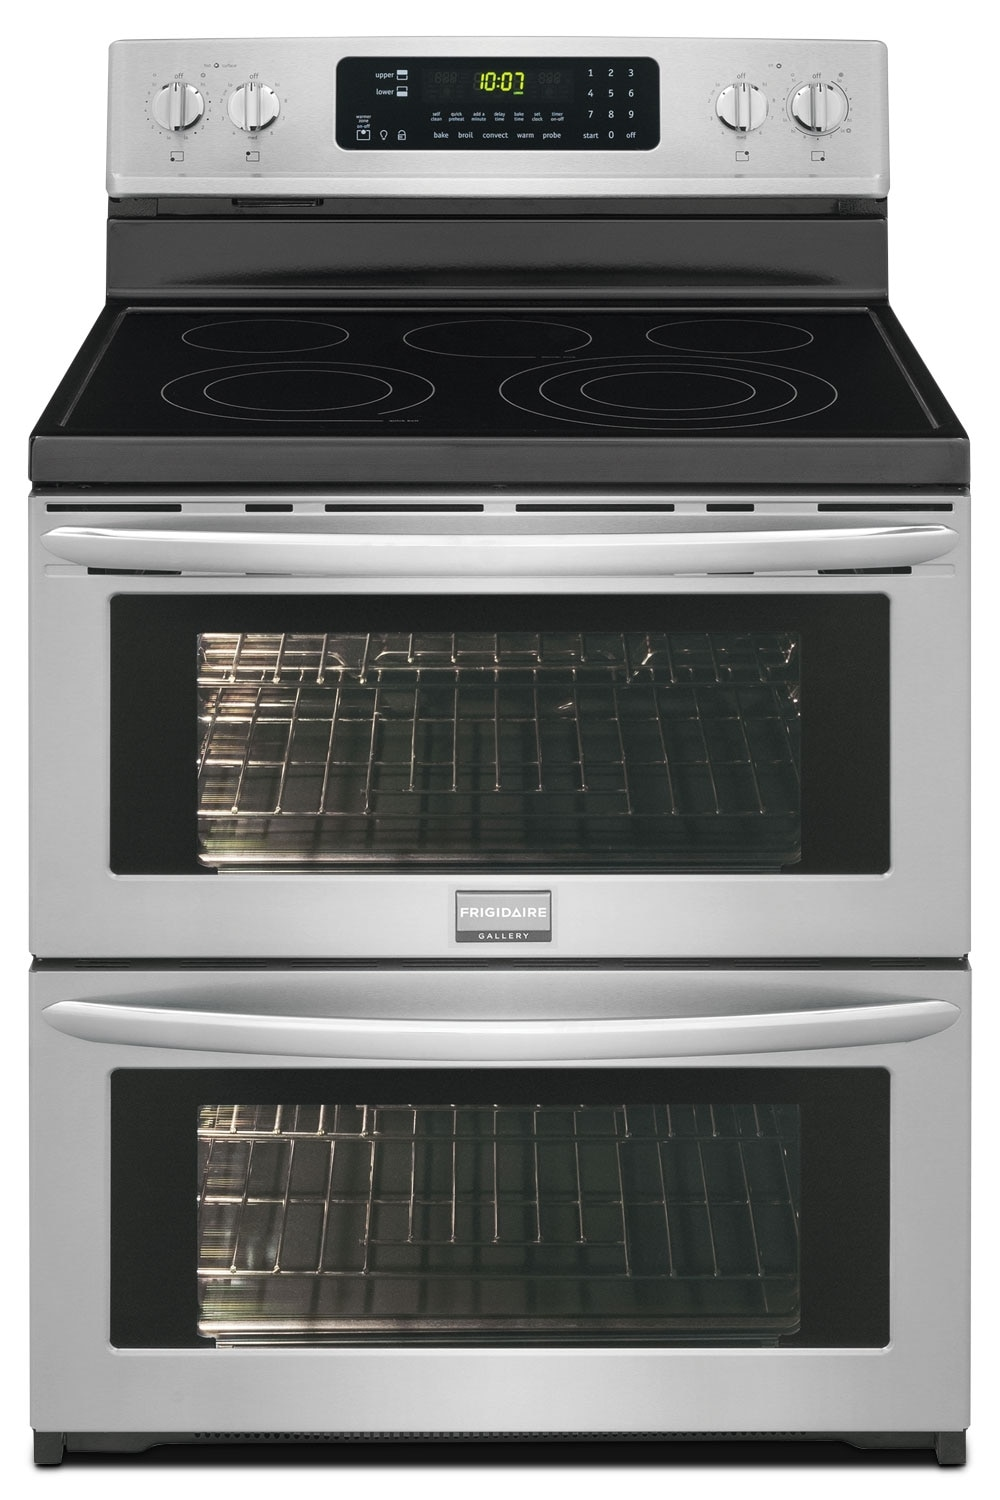 Frigidaire 7.2 Cu. Ft. Freestanding Electric Double-Oven Range – Stainless Steel